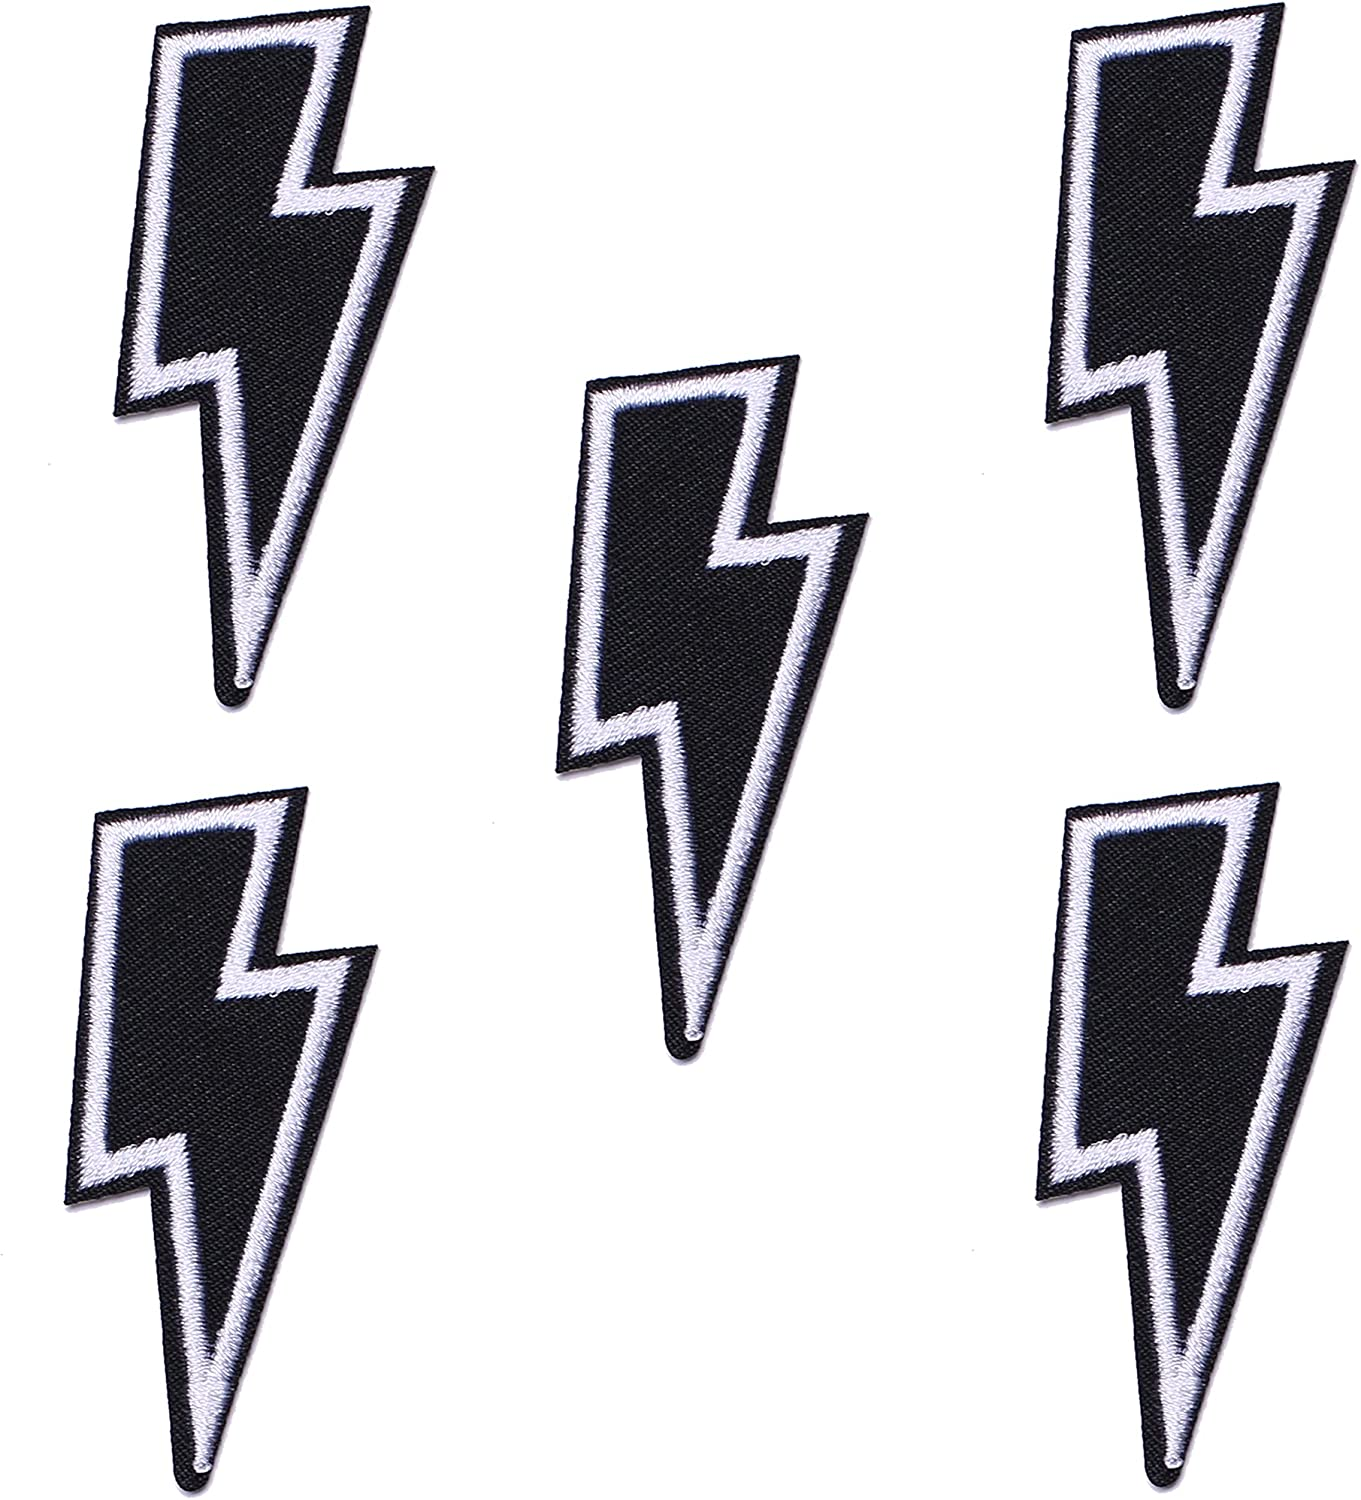 J.CARP 5Pcs Low price Black Lightning Embroidered Patch Clothe on for Award-winning store Iron